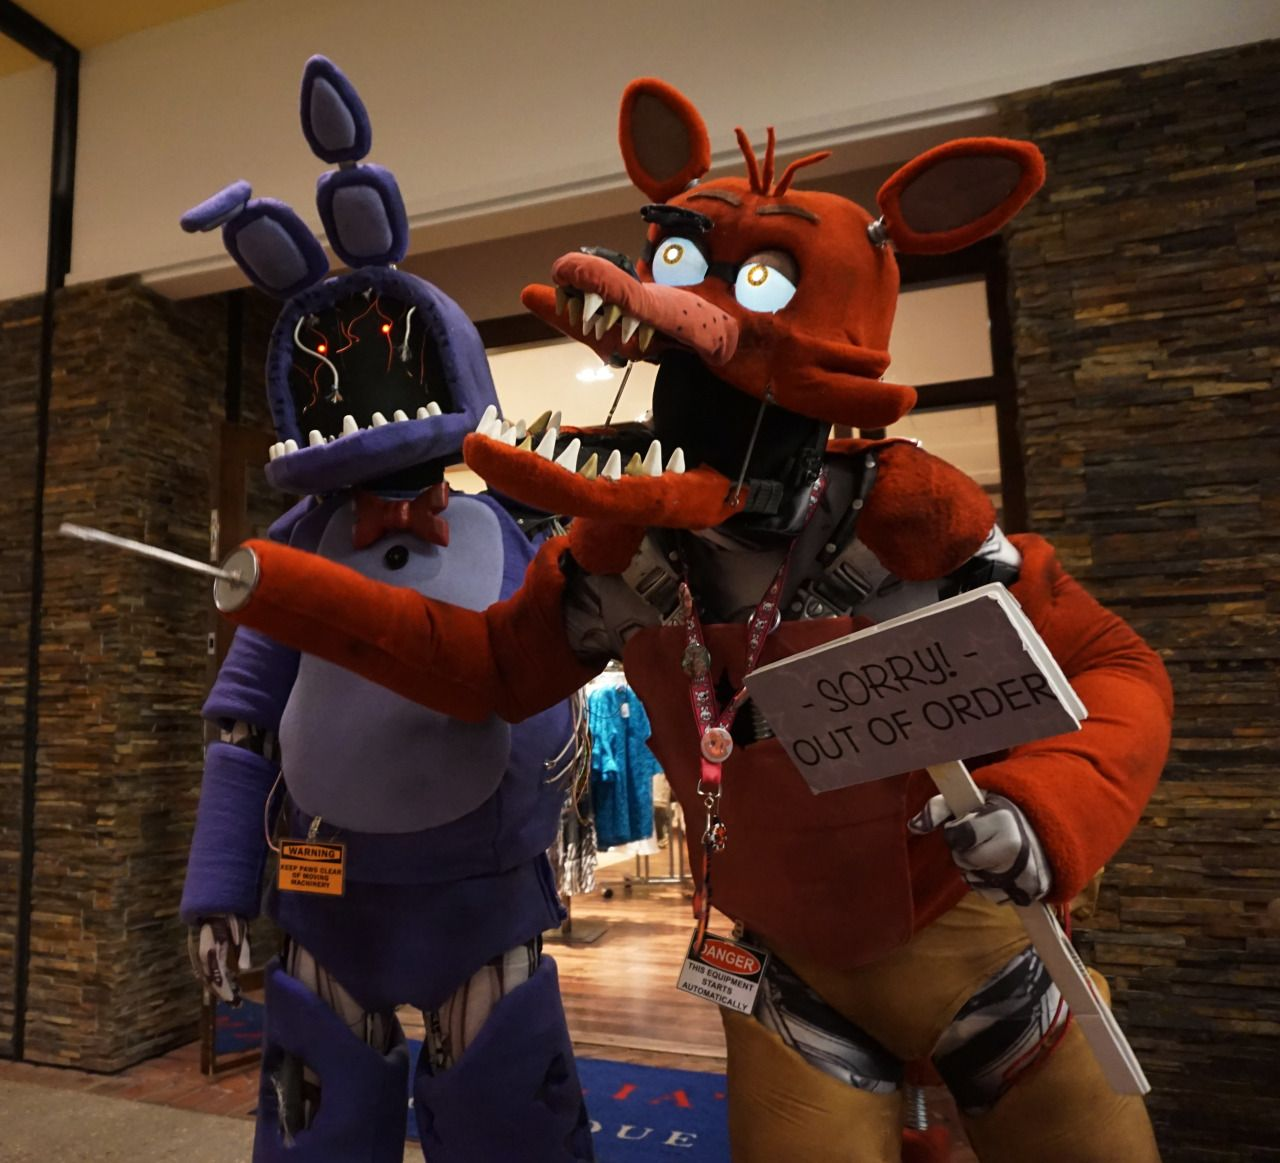 F fnaf bonnie costume for sale - Stray S Hutt Five Nights At Freddy S Magfest 2016 Bonnie Is Me